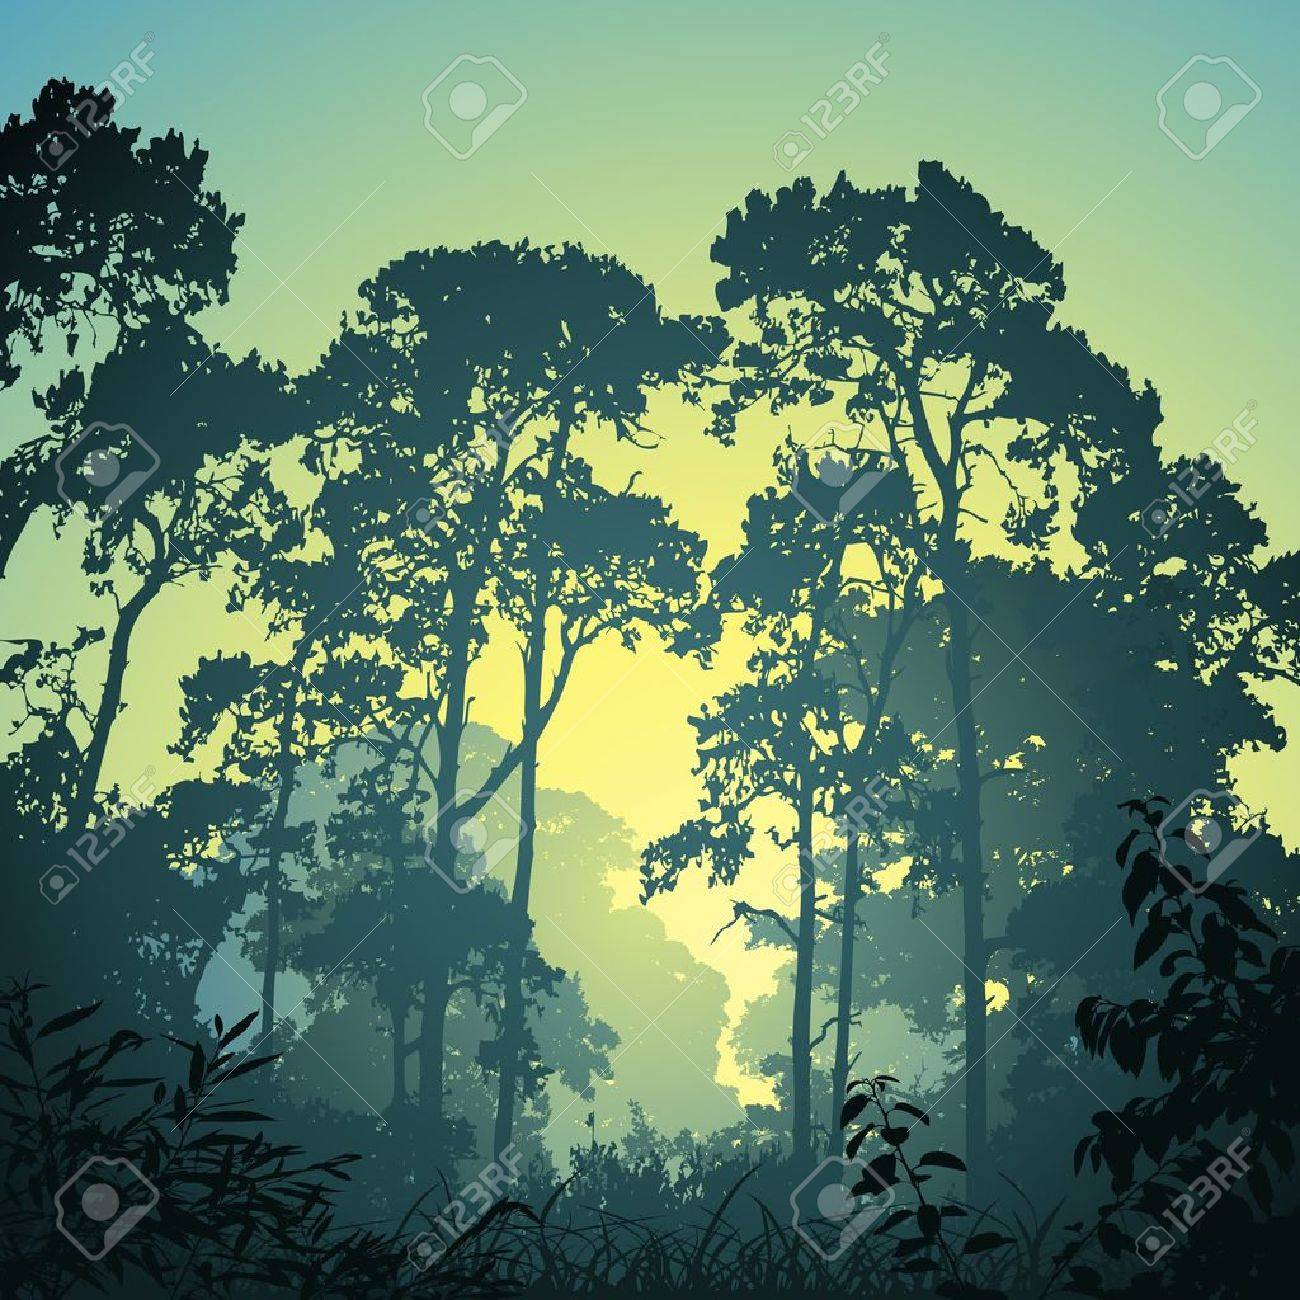 forest trees stock photos royalty free forest trees images and